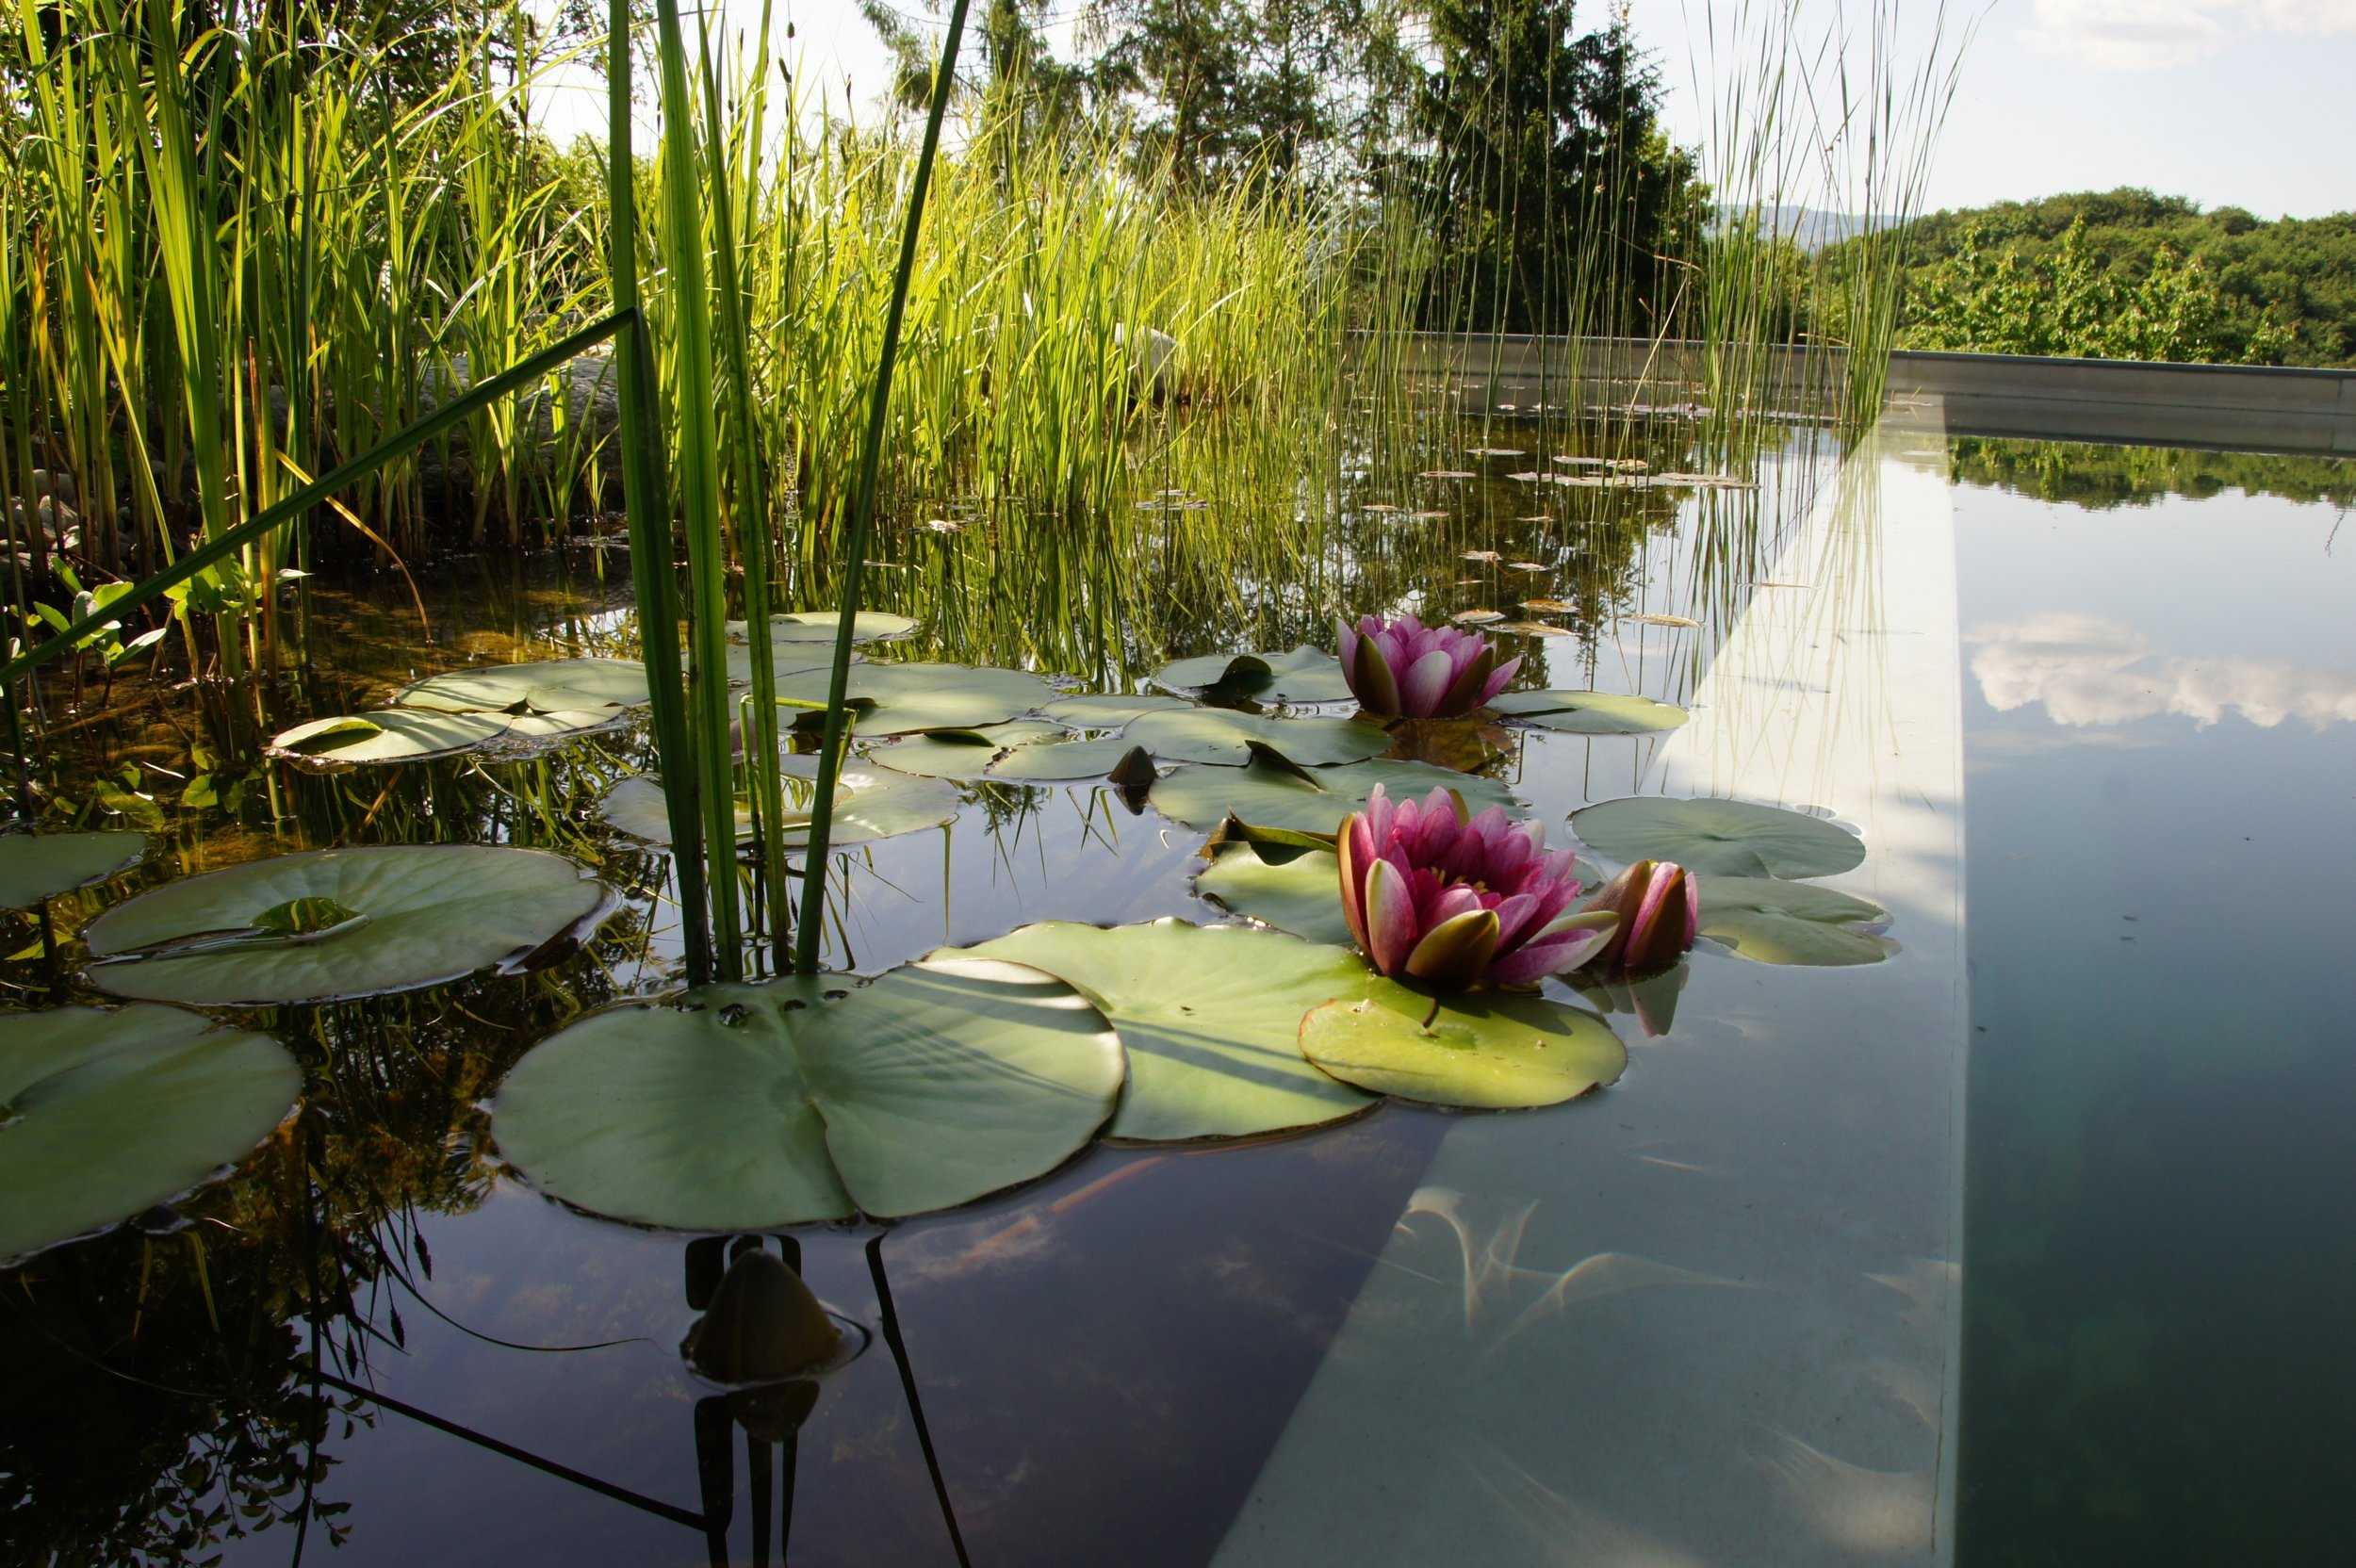 detail Example - Aquatic plants improve the aesthetics and biodiversity of a pool, more reasons to convert!